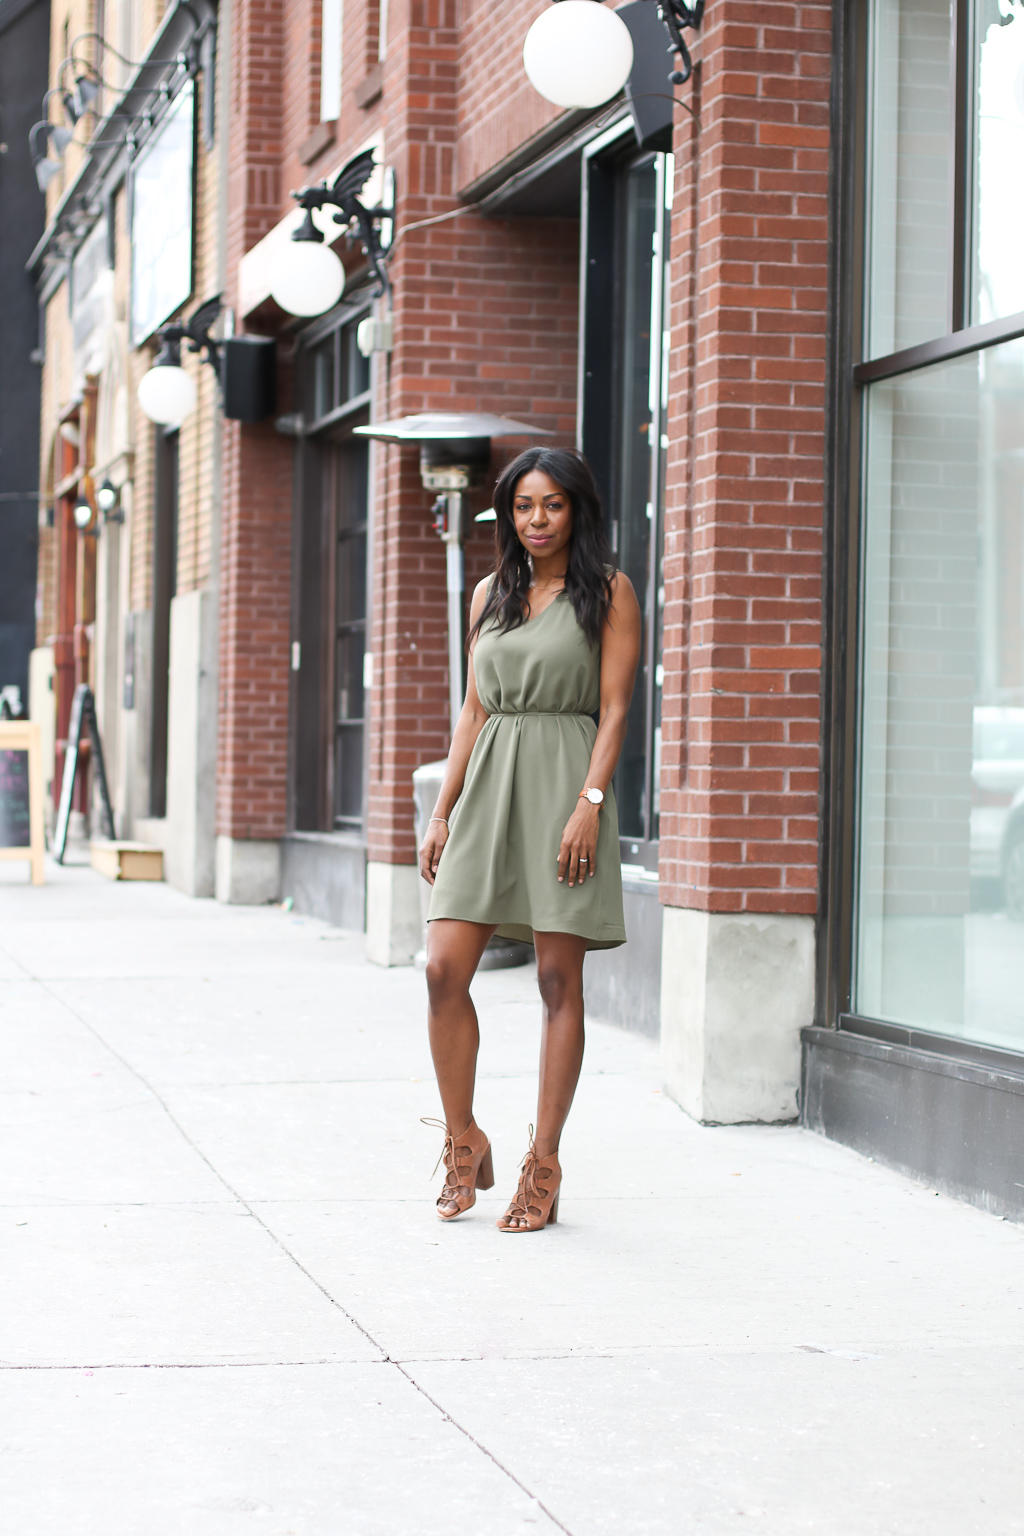 My Effortless Style With RW & Co.